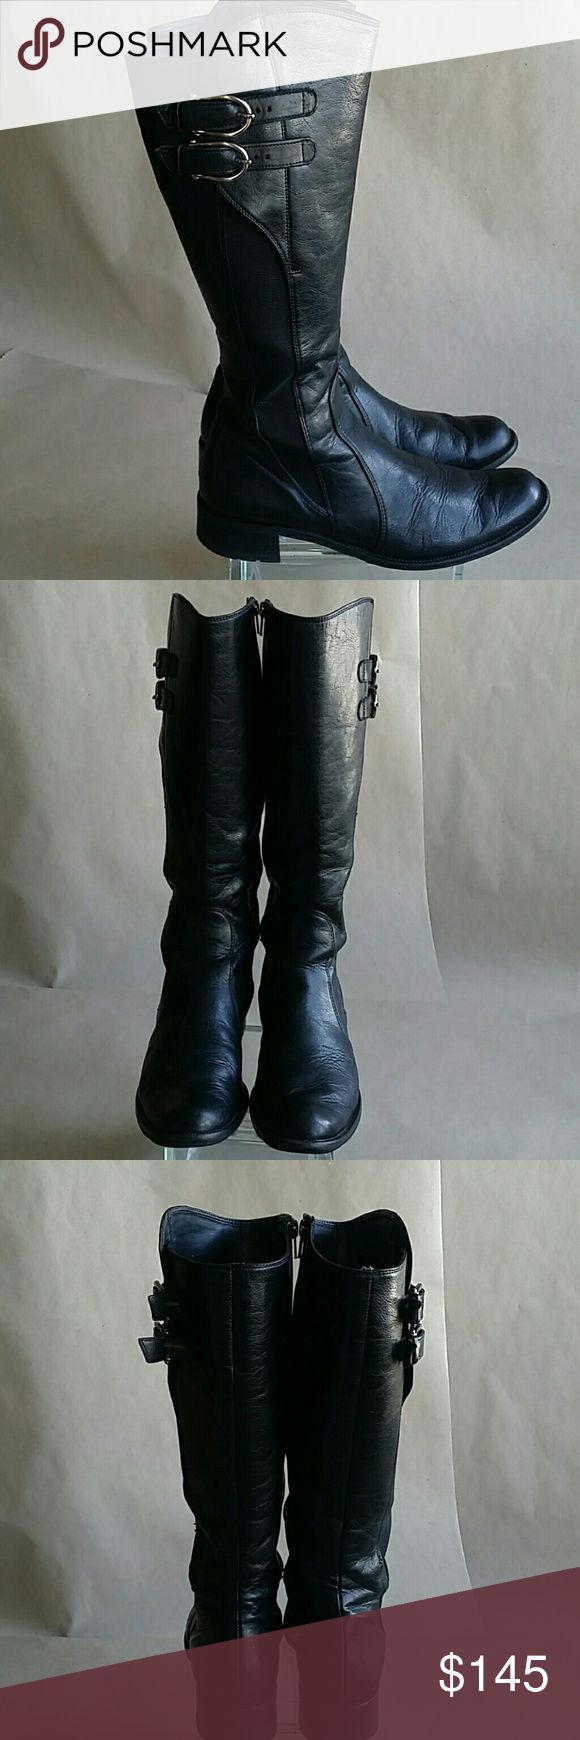 Paul Green boots PAUL GREEN Munchen black lethear knee high boots. Very good condition. Men's size 6.5 Paul Green Shoes Boots